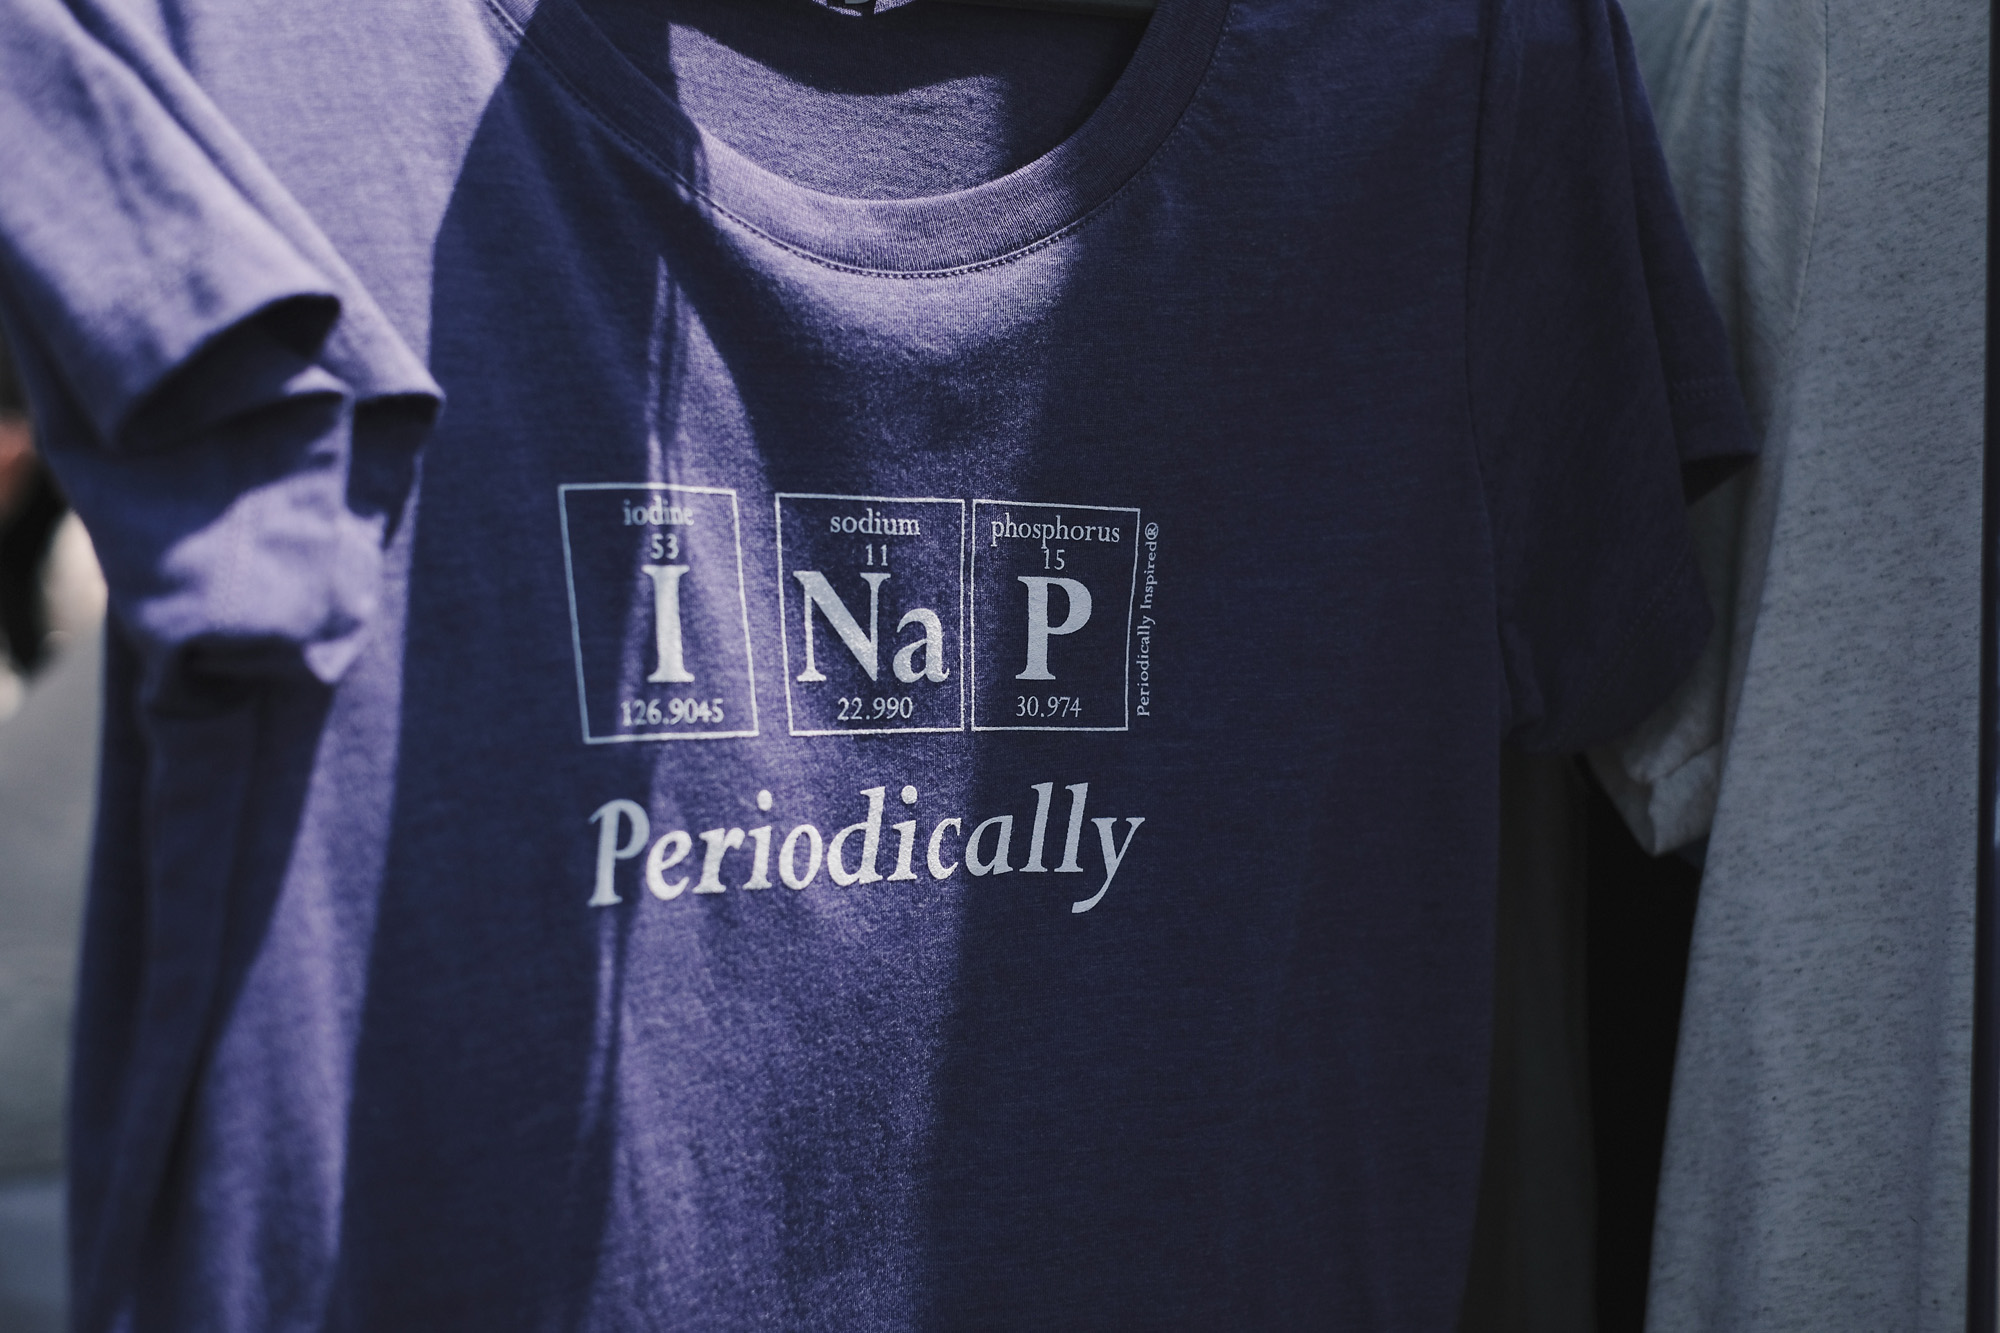 https://www.periodicallyinspired.com